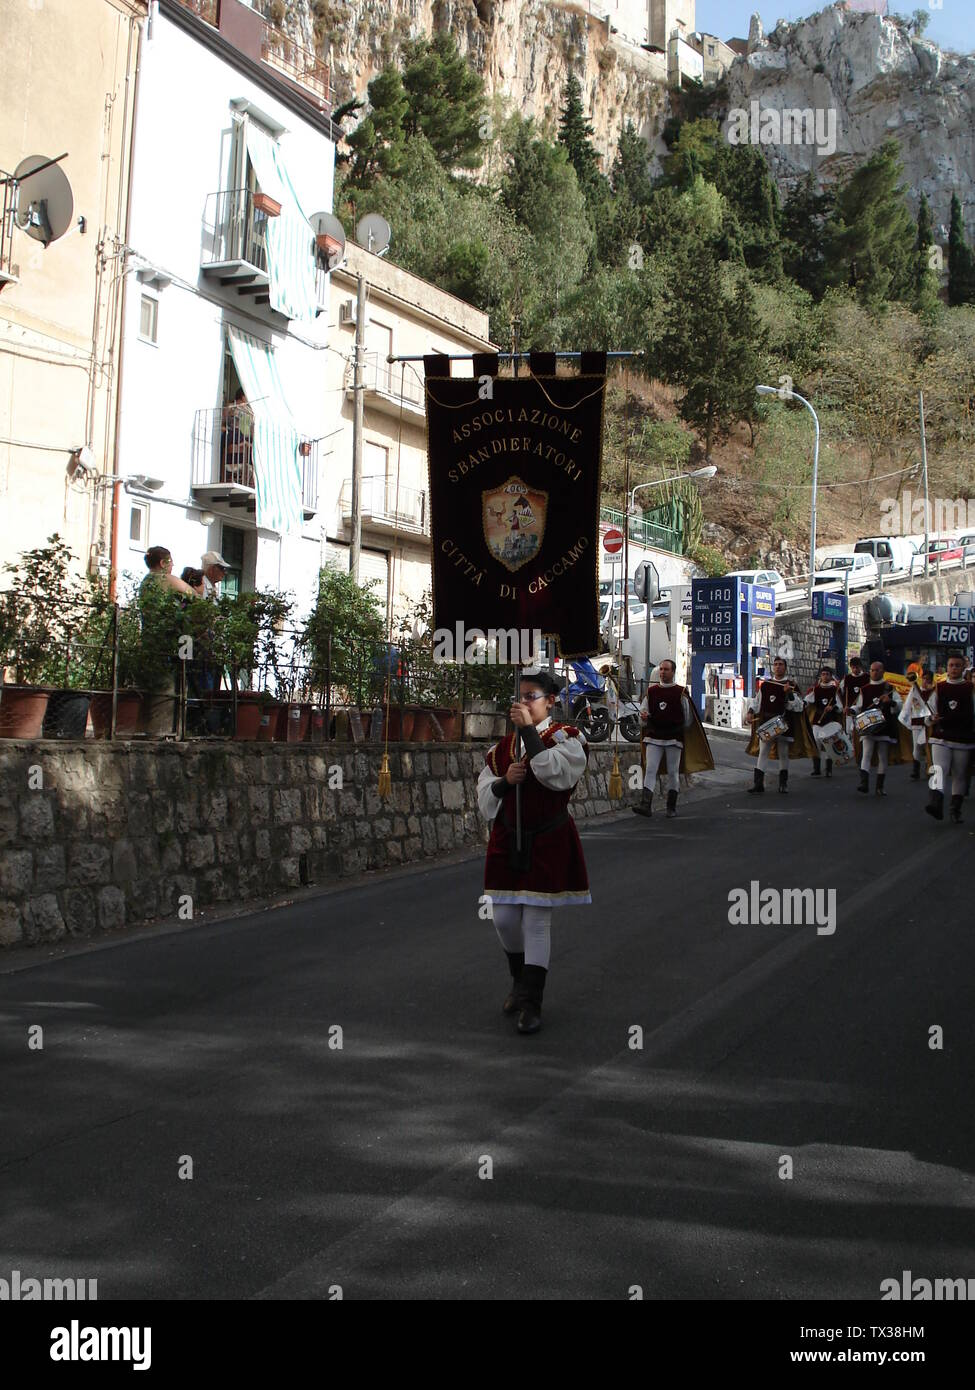 'English: Caccamo Sicily Via liberta, near the entrance to the Castle on 8-34-07 'Festa del Padrone'; 13 September 2007 (original upload date); Transferred from en.wikipedia to Commons by Rootology using CommonsHelper.; Salthecop at English Wikipedia; ' - Stock Image